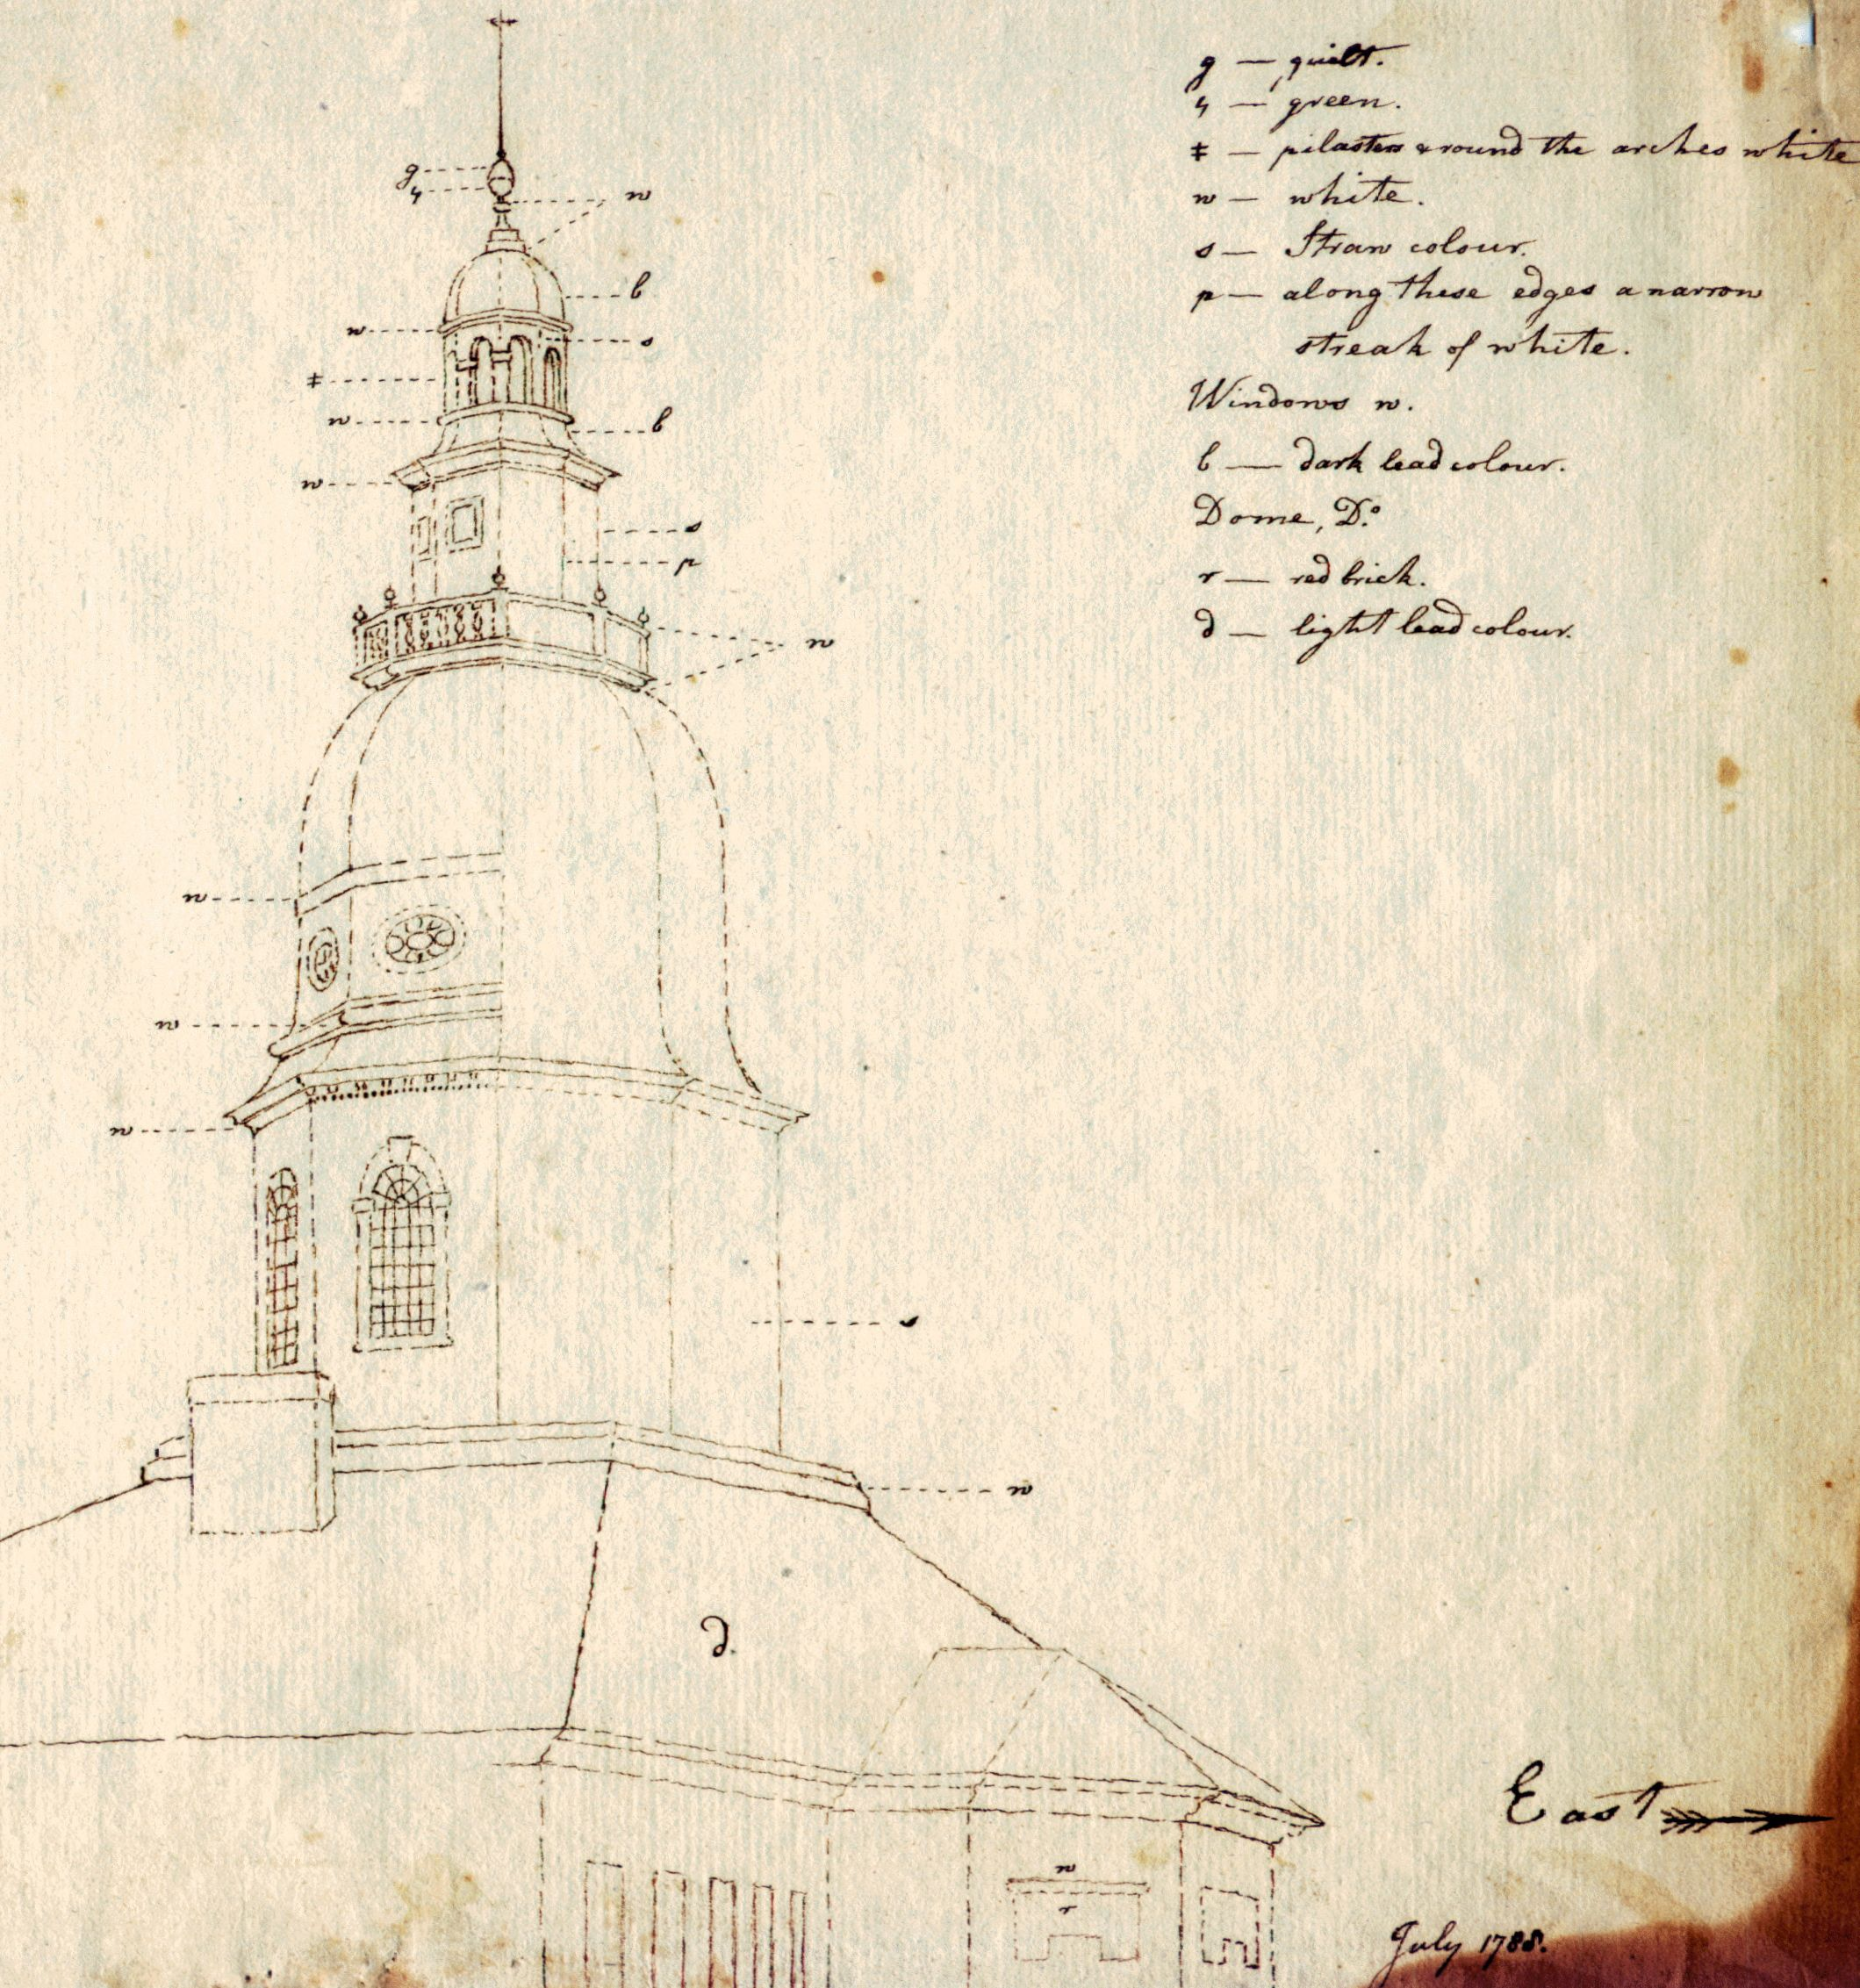 """Highlight from Charles Willson Peale sketch depicting """"straw"""" as a key dome color."""